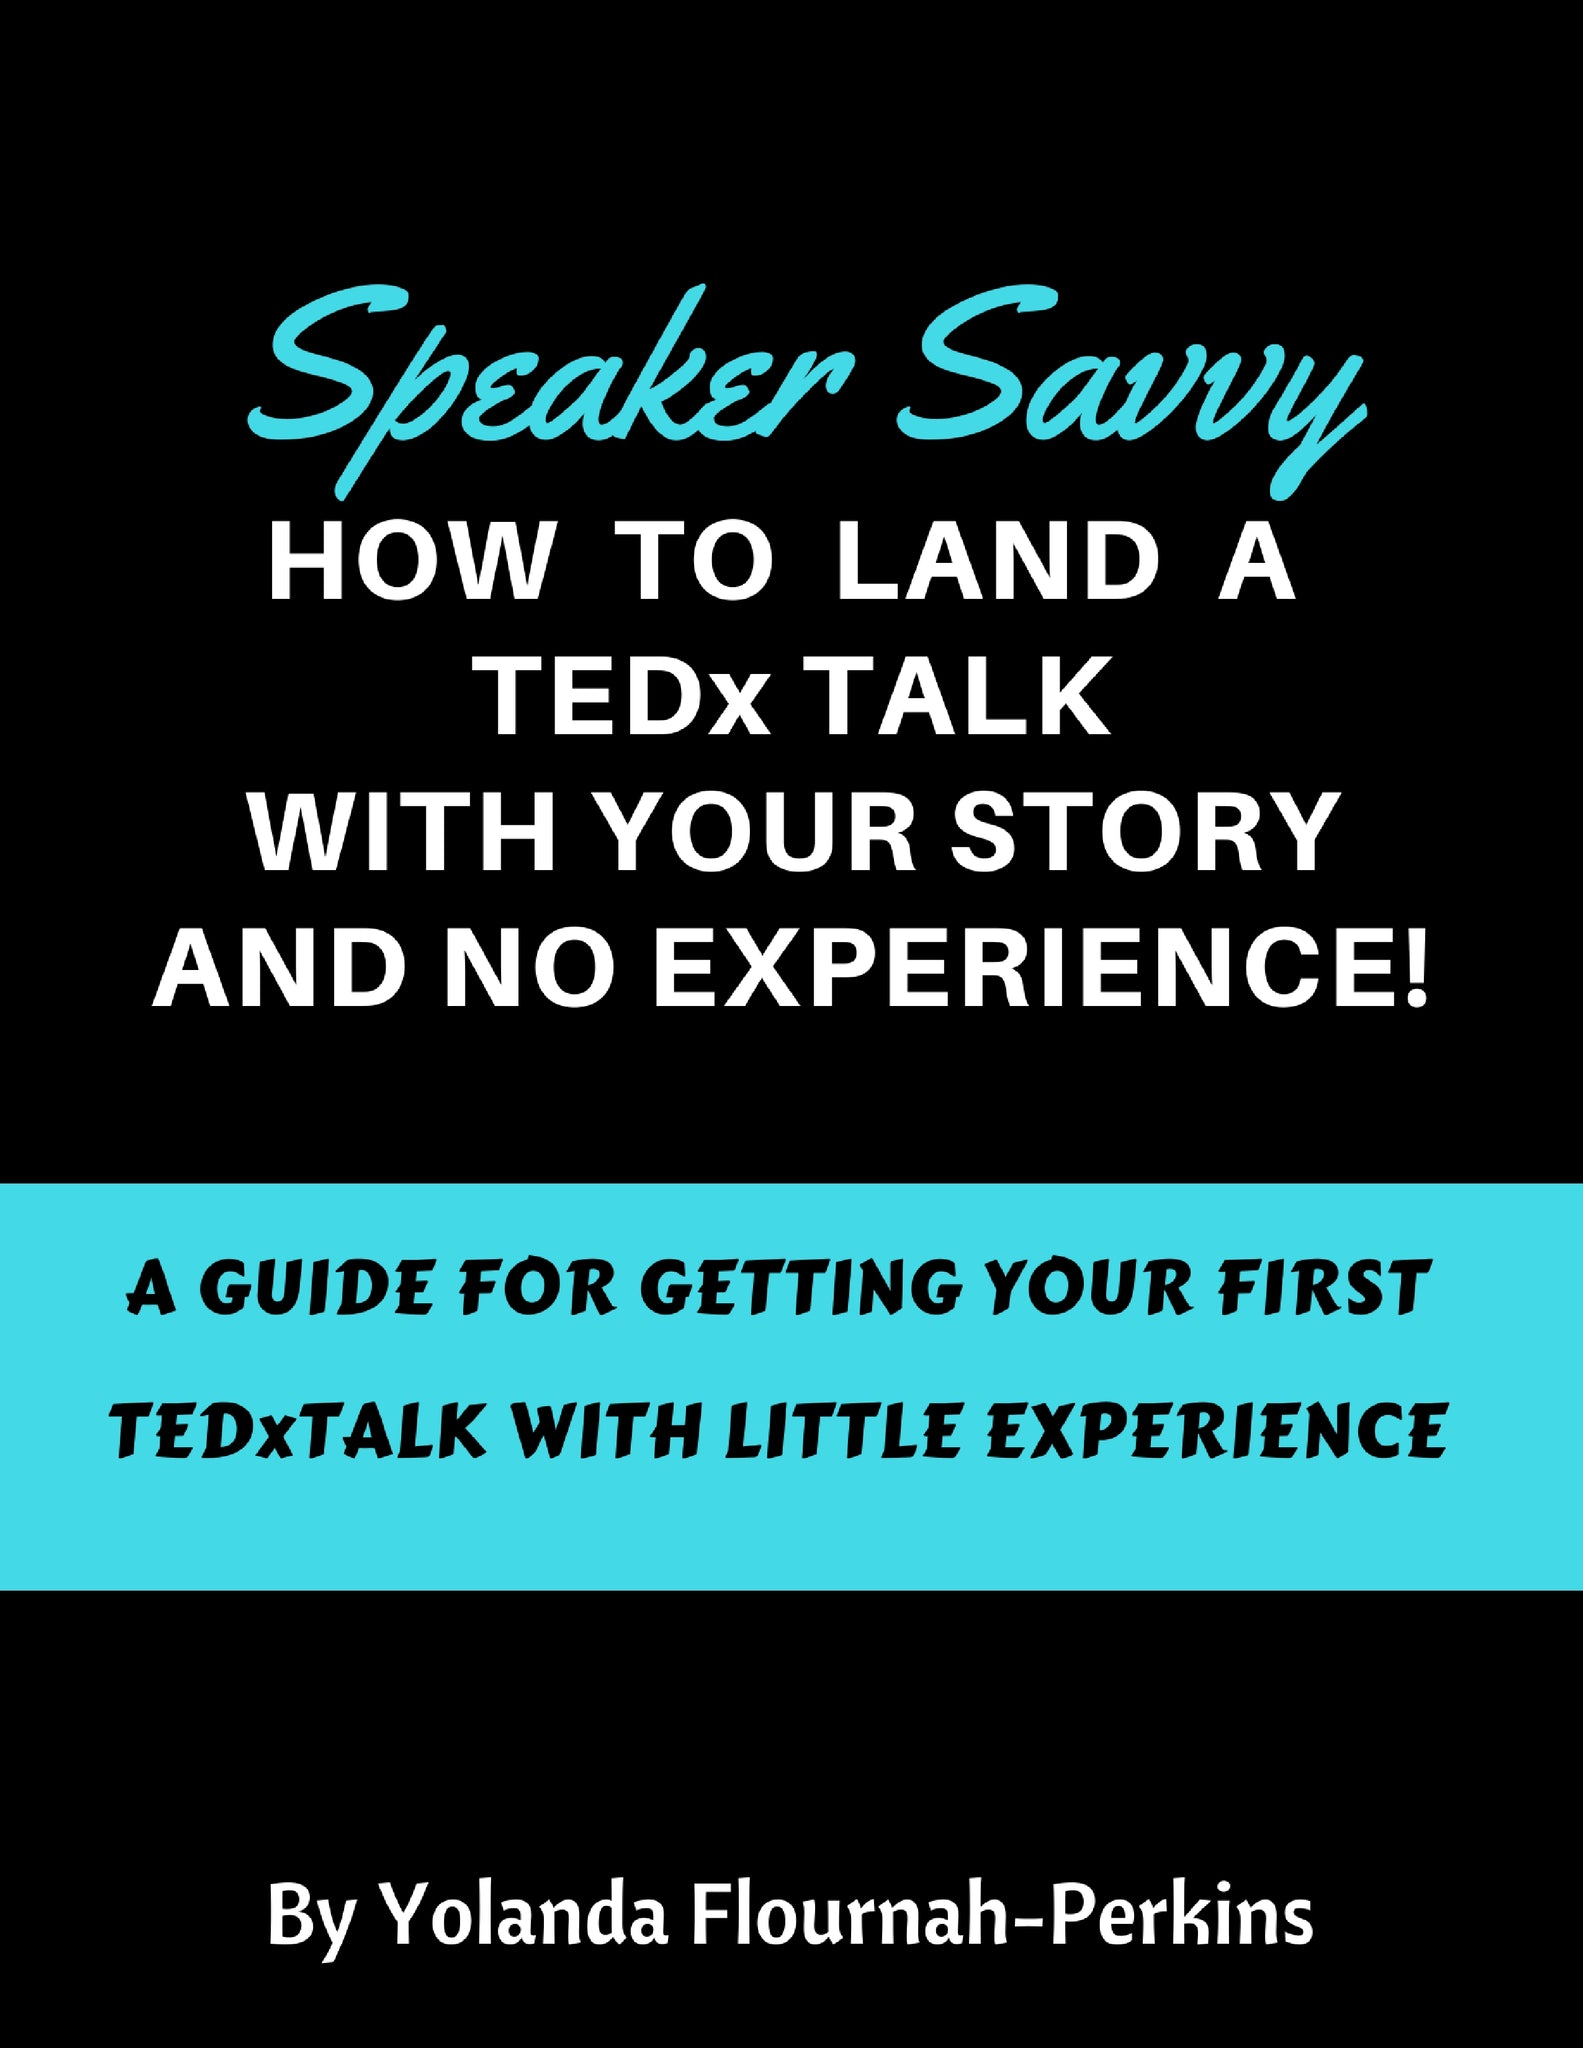 How To Land A TEDx TALK - digital download (FREE MASTERCLASS INCLUDED)